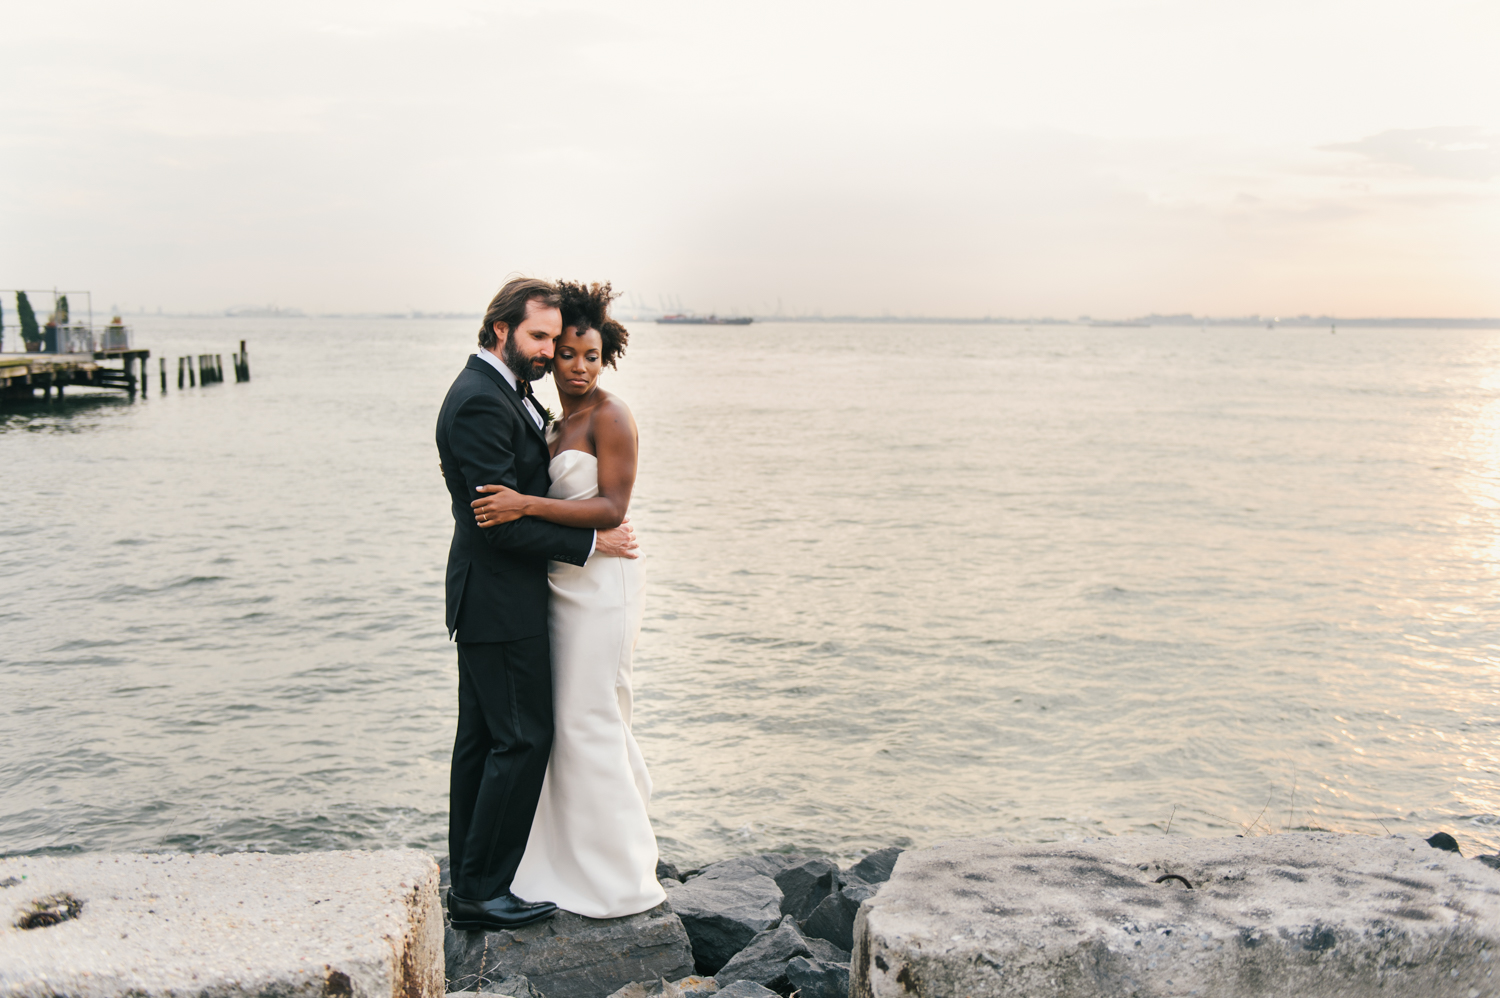 LibertyWarehouse.Brooklyn.RedHook.Wedding28.jpg